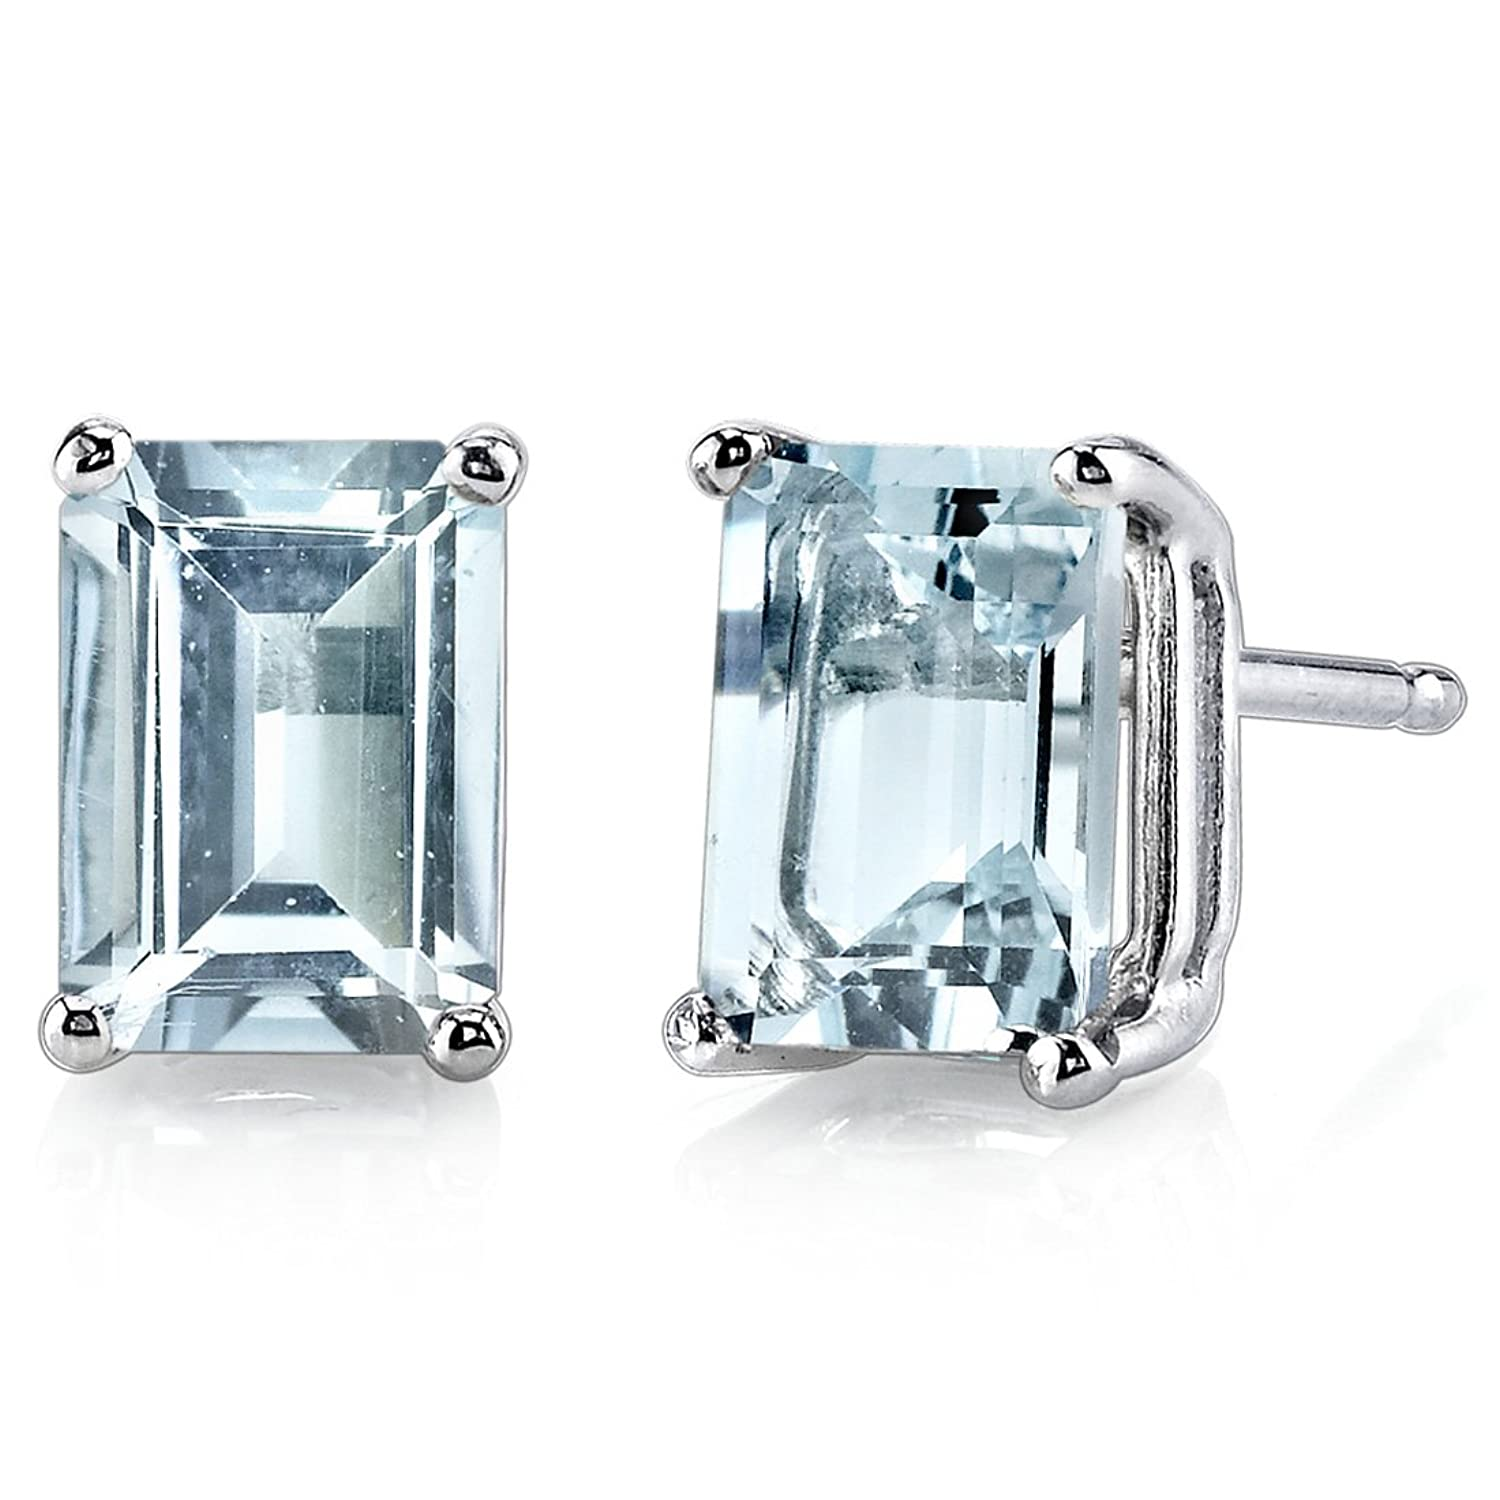 all aqua aquamarine img edited white sizes stud earrings gold products marine up and post wired